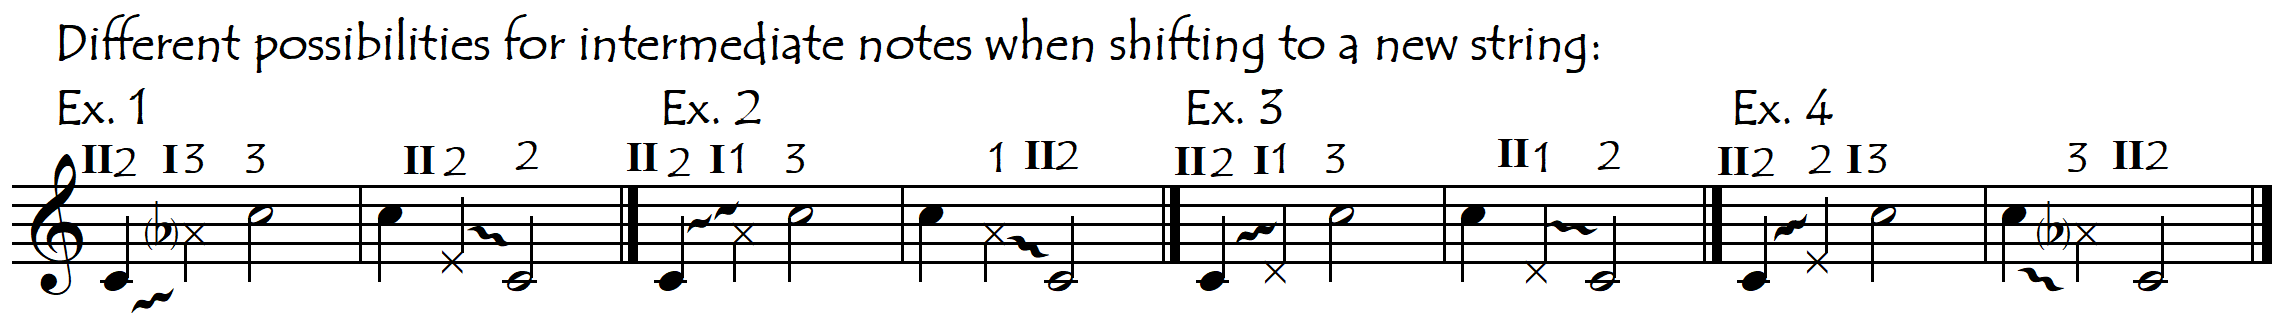 int notes to new string NEW